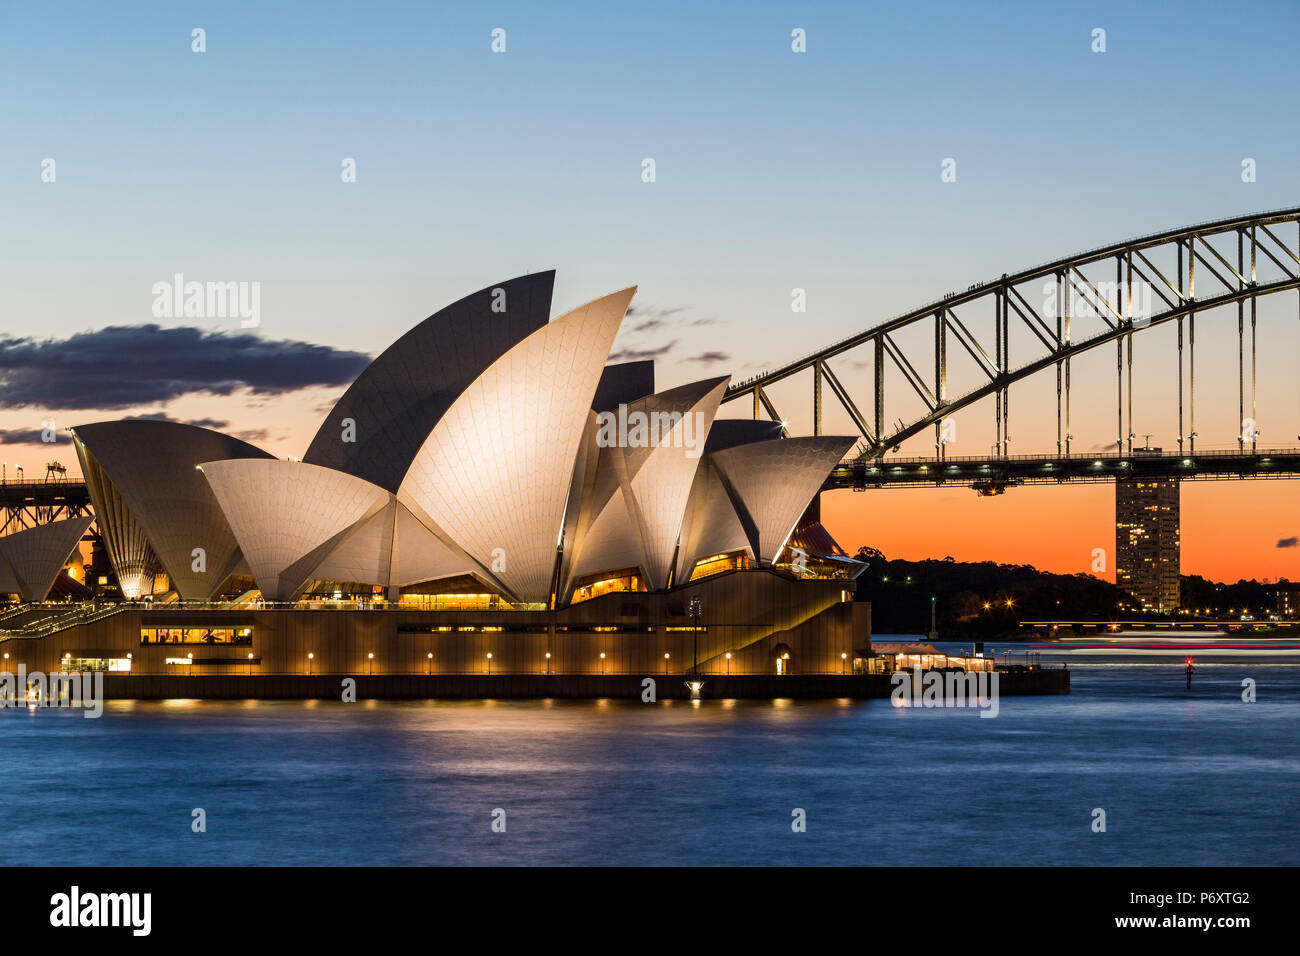 Sydney al tramonto. Opera house da Mrs Macquaries Chair. Nuovo Galles del Sud, Australia Immagini Stock